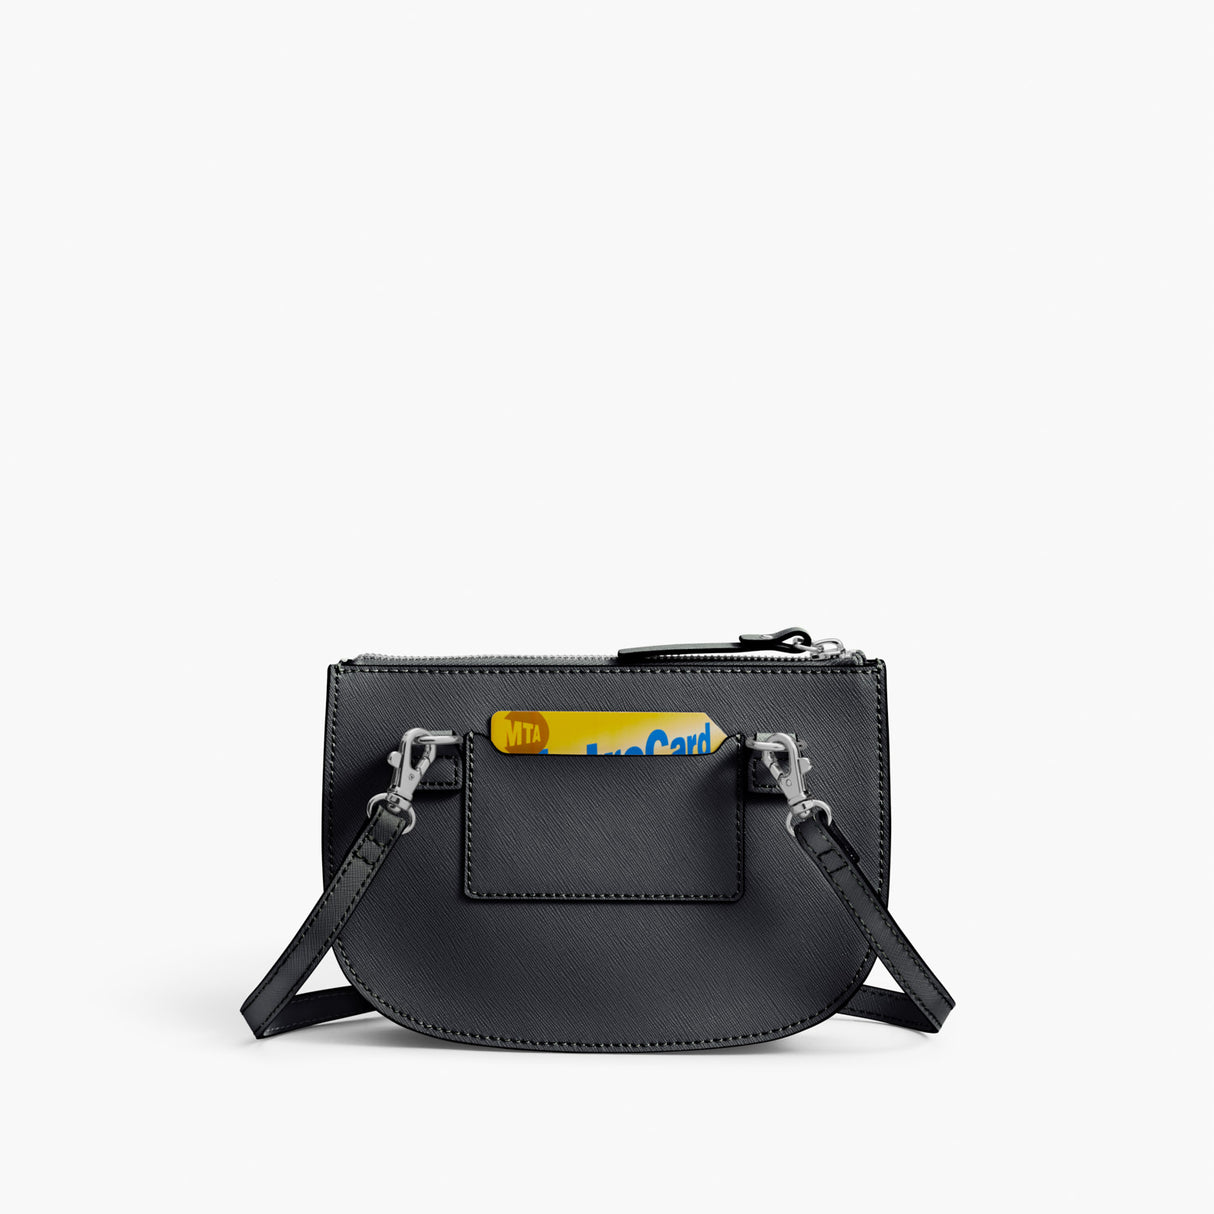 Back Card Slot - Waverley 2 - Saffiano Leather - Dark Grey / Silver / Azure - Crossbody Bag - Lo & Sons